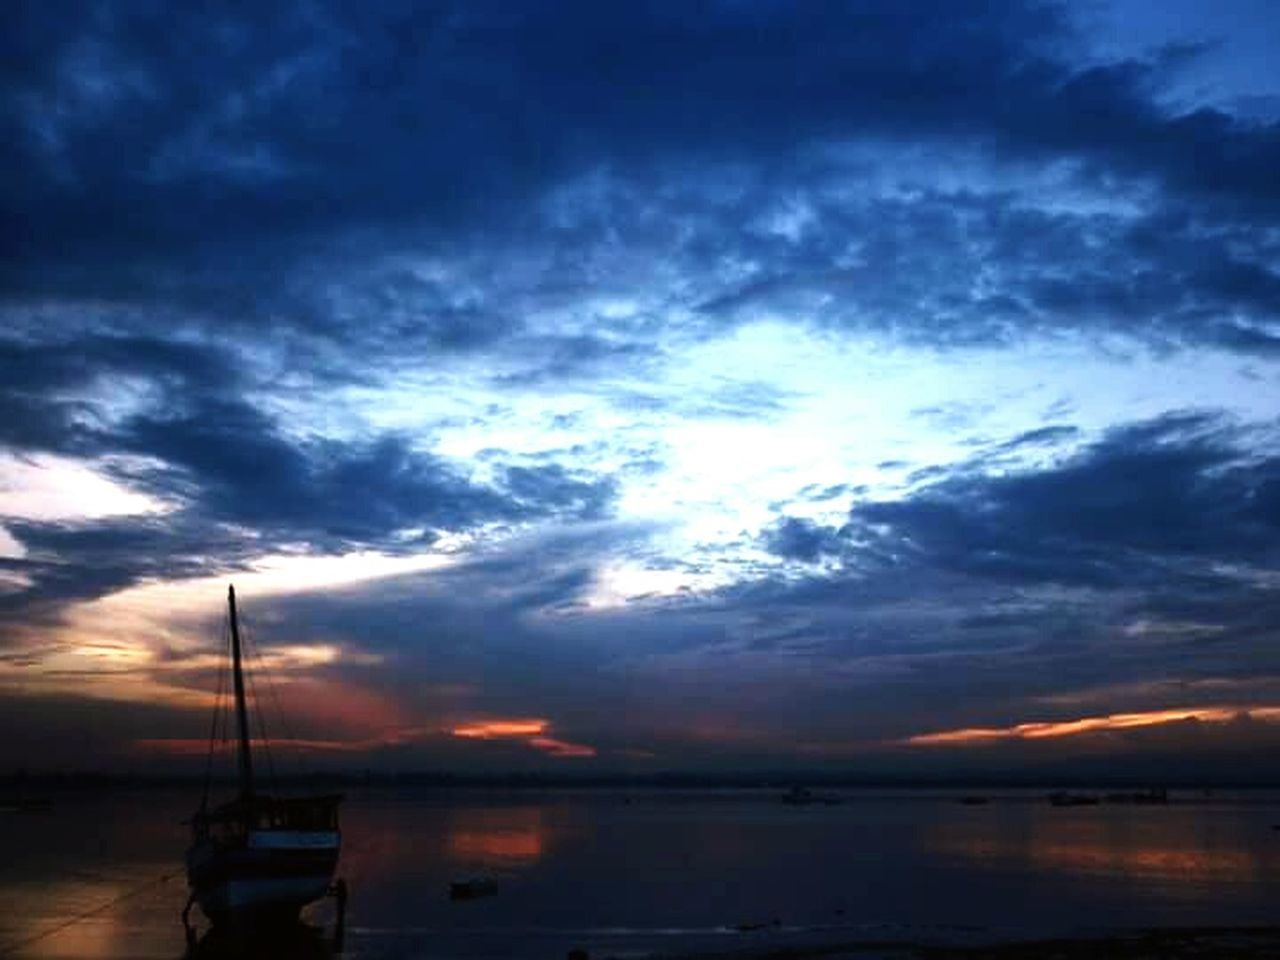 sky, cloud - sky, sunset, water, beauty in nature, scenics, nature, nautical vessel, silhouette, transportation, tranquility, mode of transport, no people, outdoors, sea, tranquil scene, waterfront, day